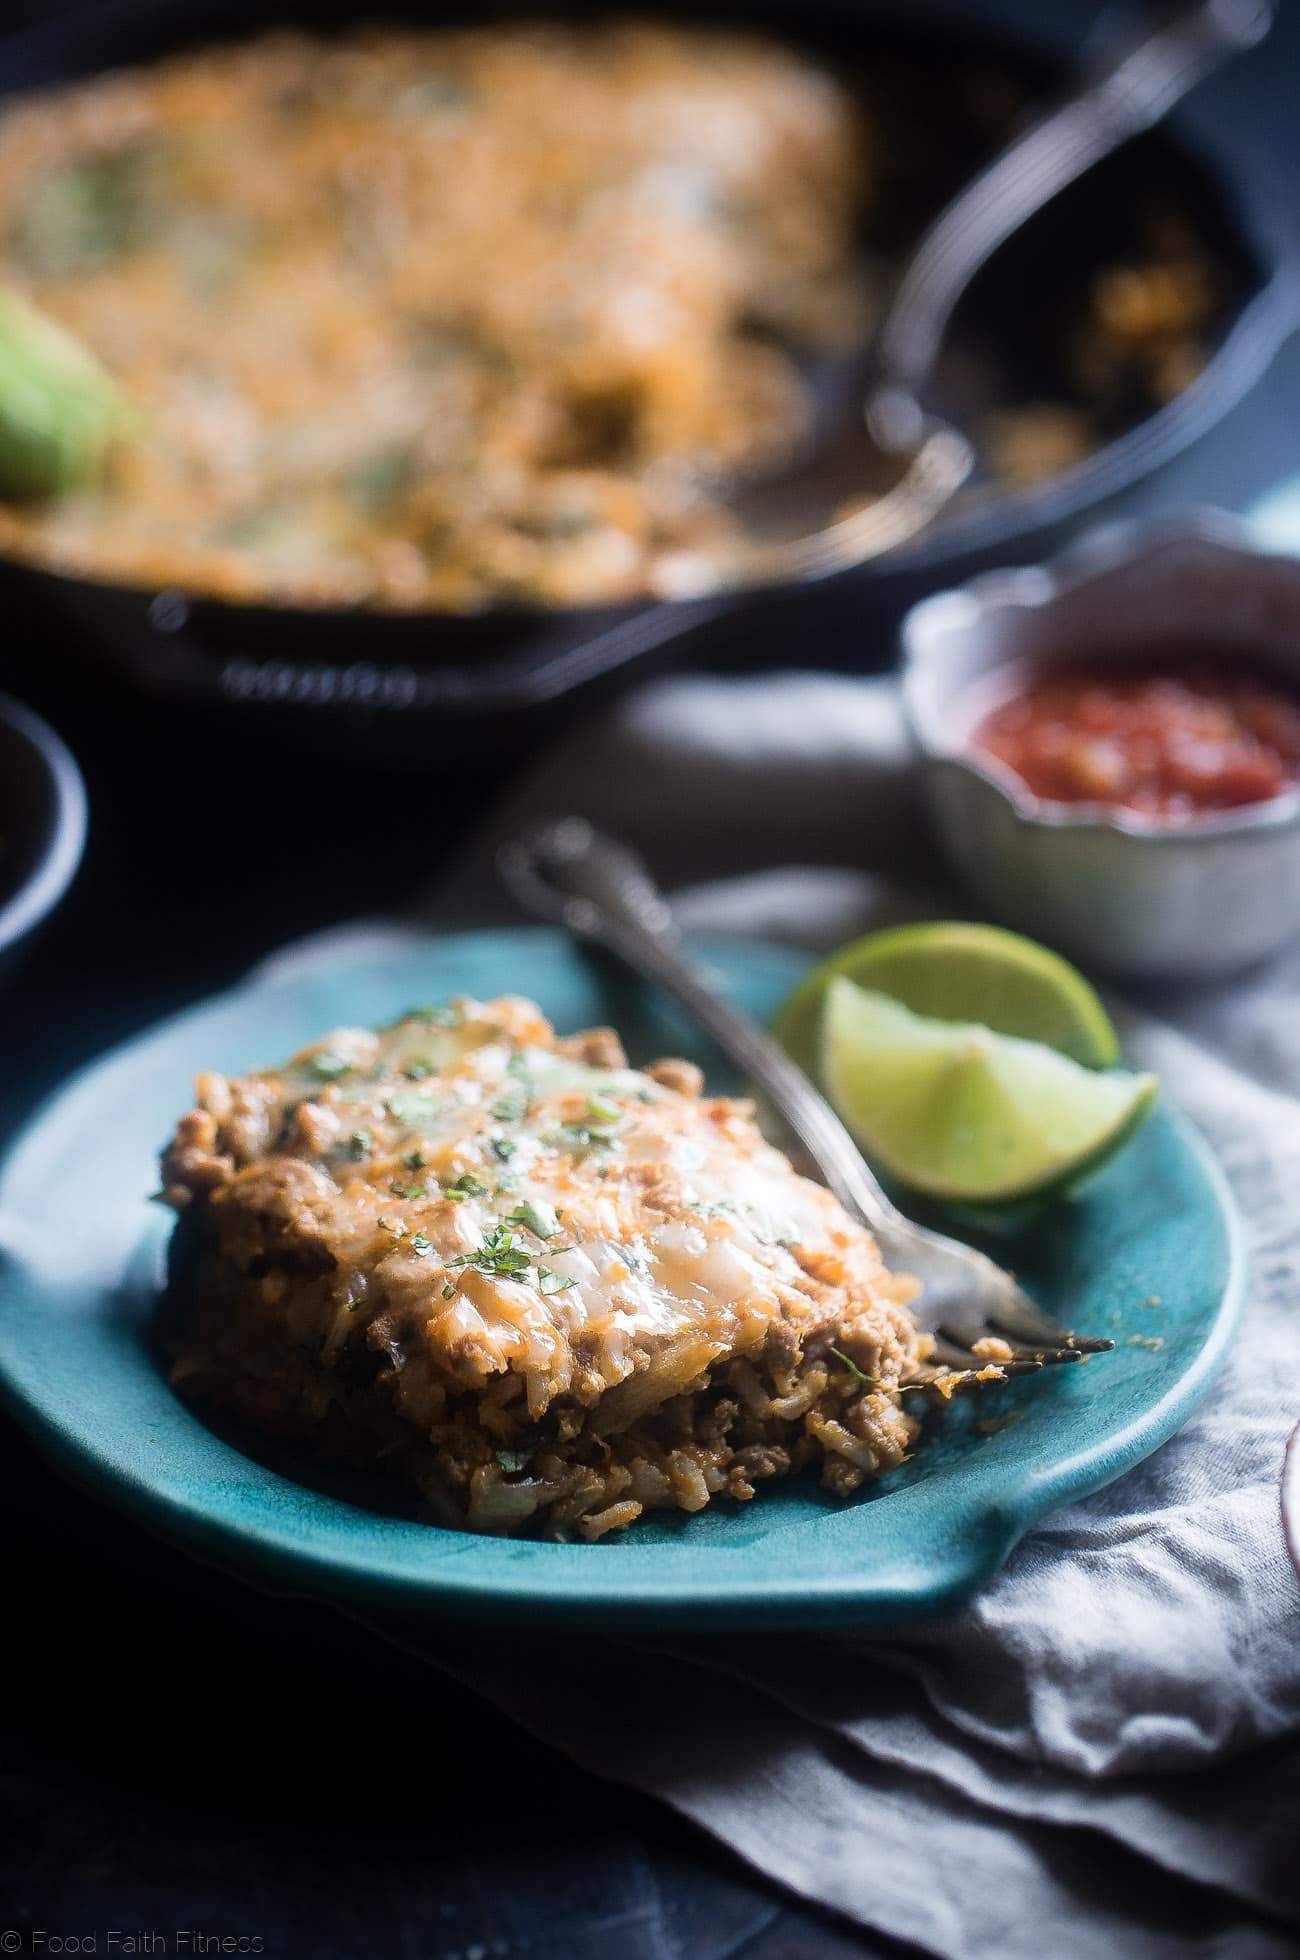 One Pot Mexican Chicken Rice Casserole - This chicken Mexican rice casserole uses sweet potato for extra creaminess! It's a healthy, quick and easy, 8 ingredient dinner for busy weeknights that is only 330 calories!   Foodfaithfitness.com   @FoodFaithFit